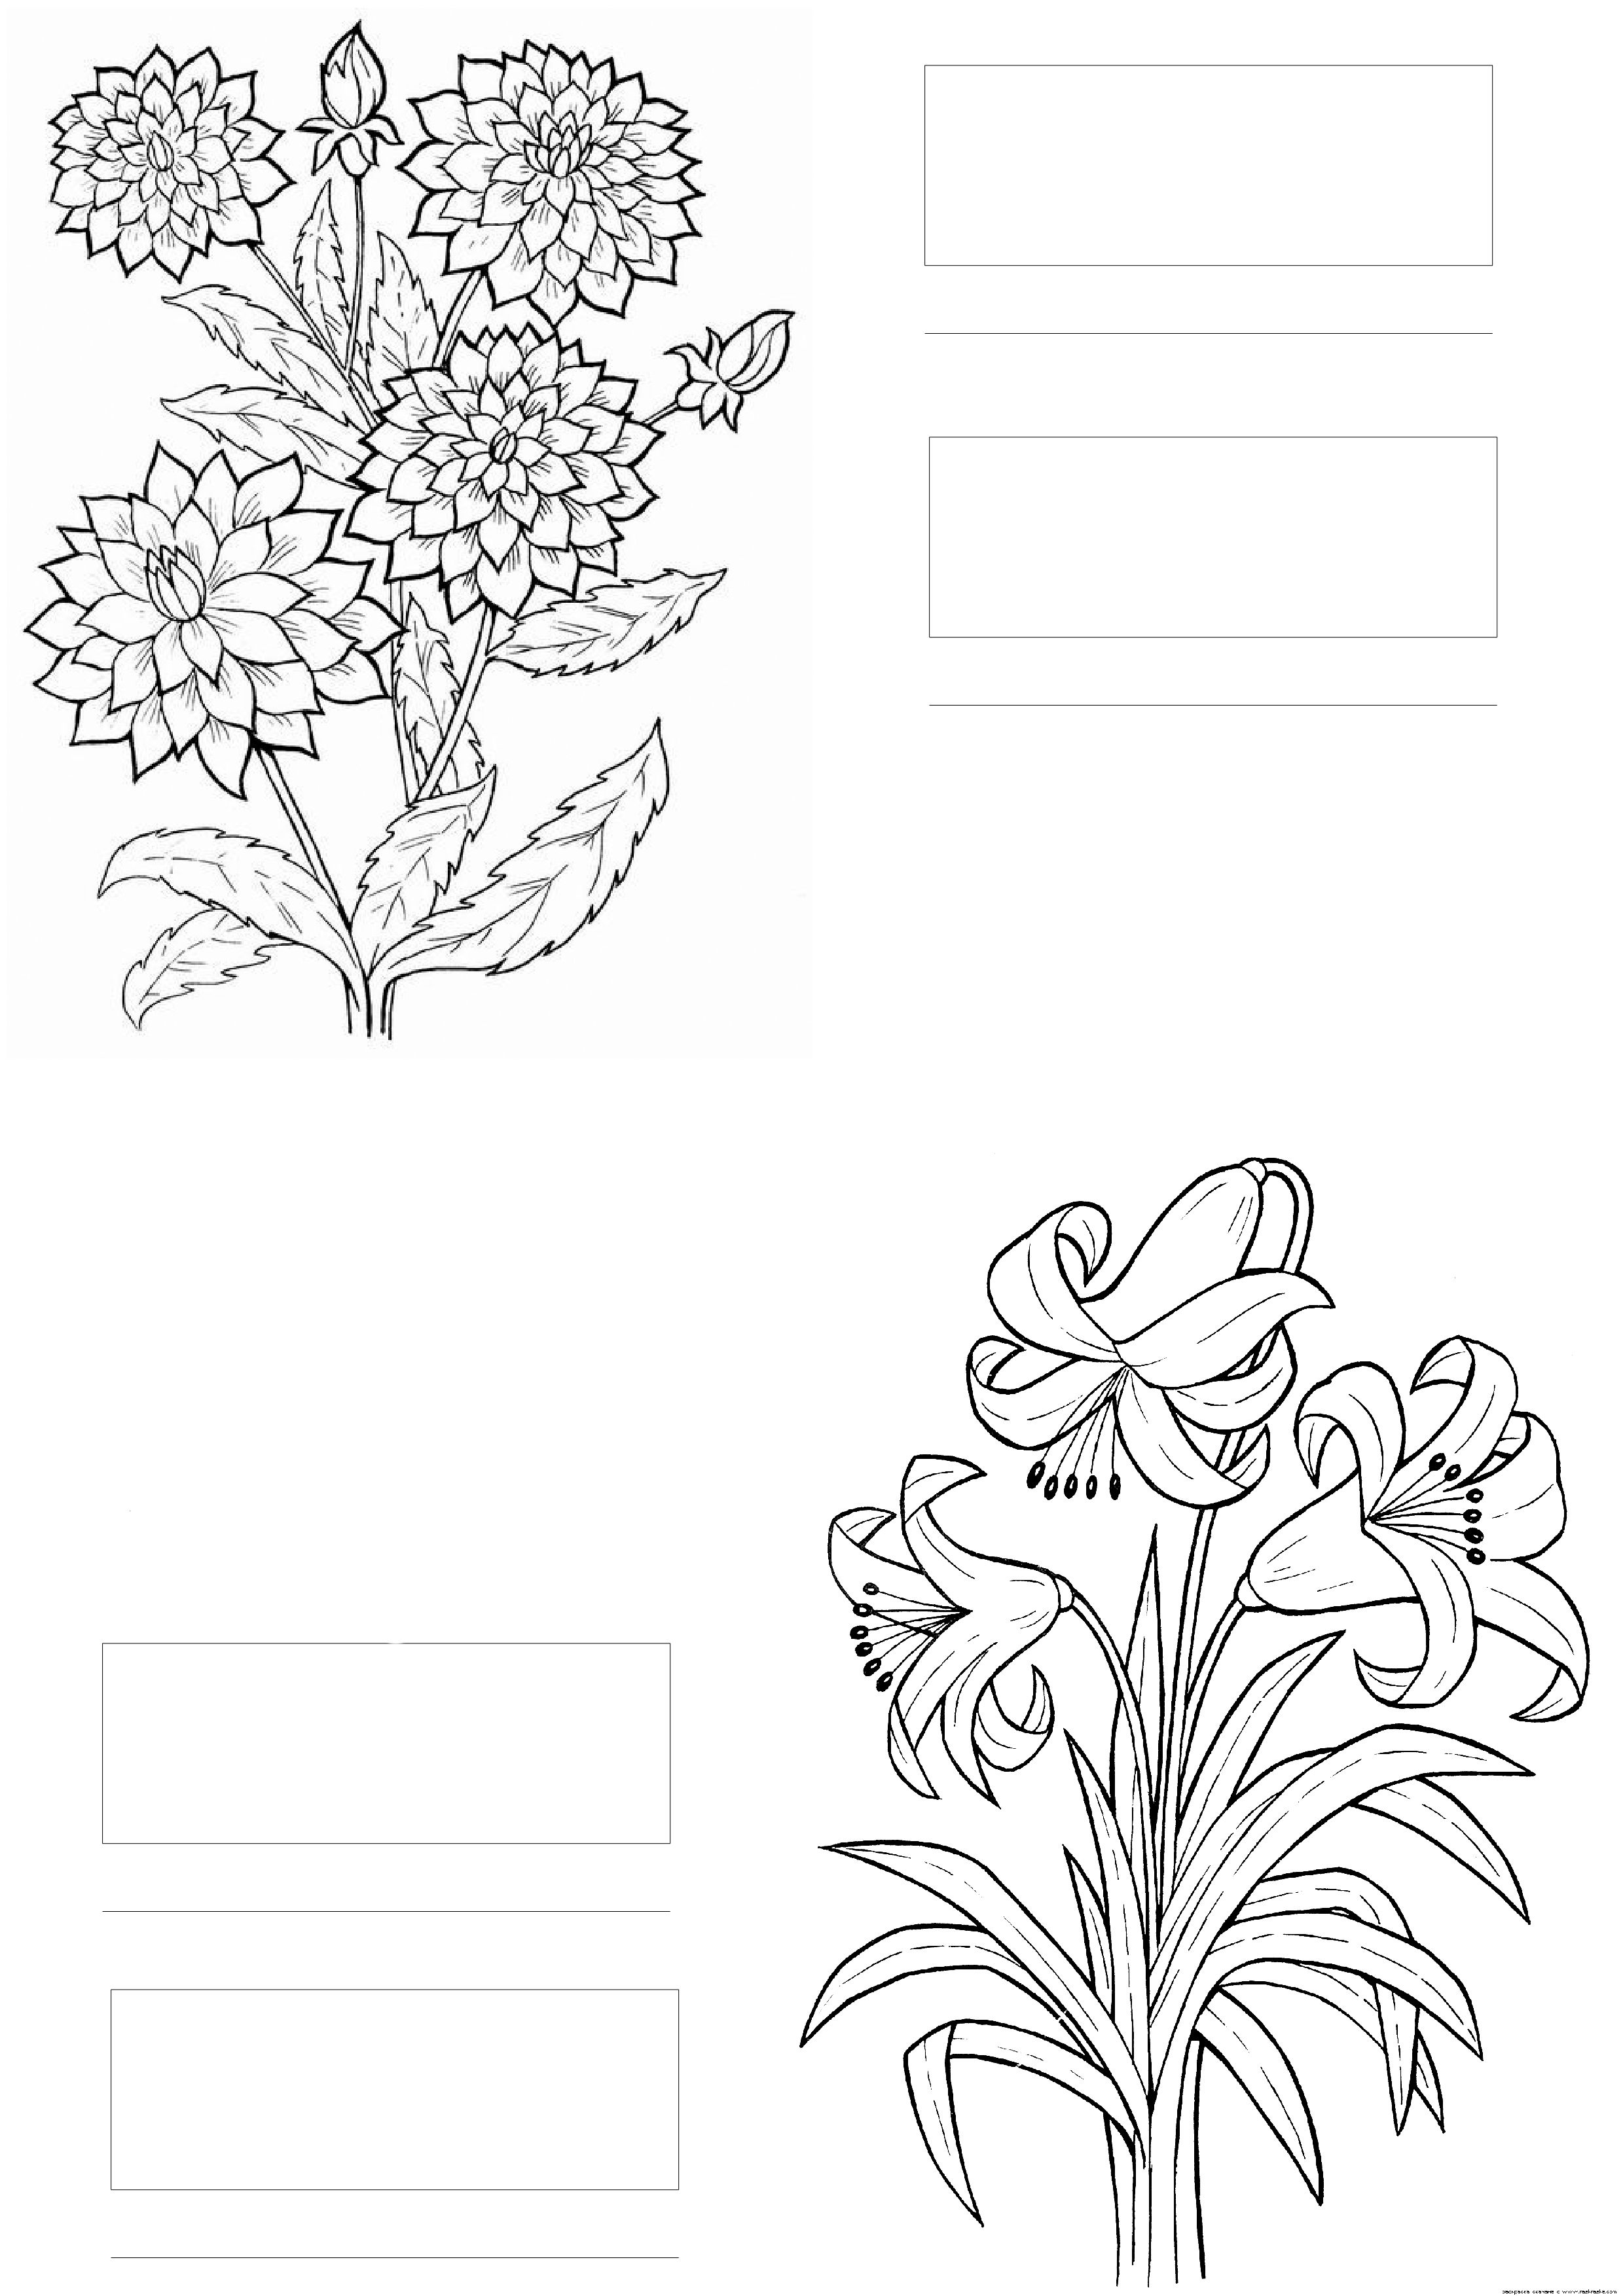 coloring with colored pencils and markers coloring flowers with copics unique 376 best pattern markers with colored pencils coloring and